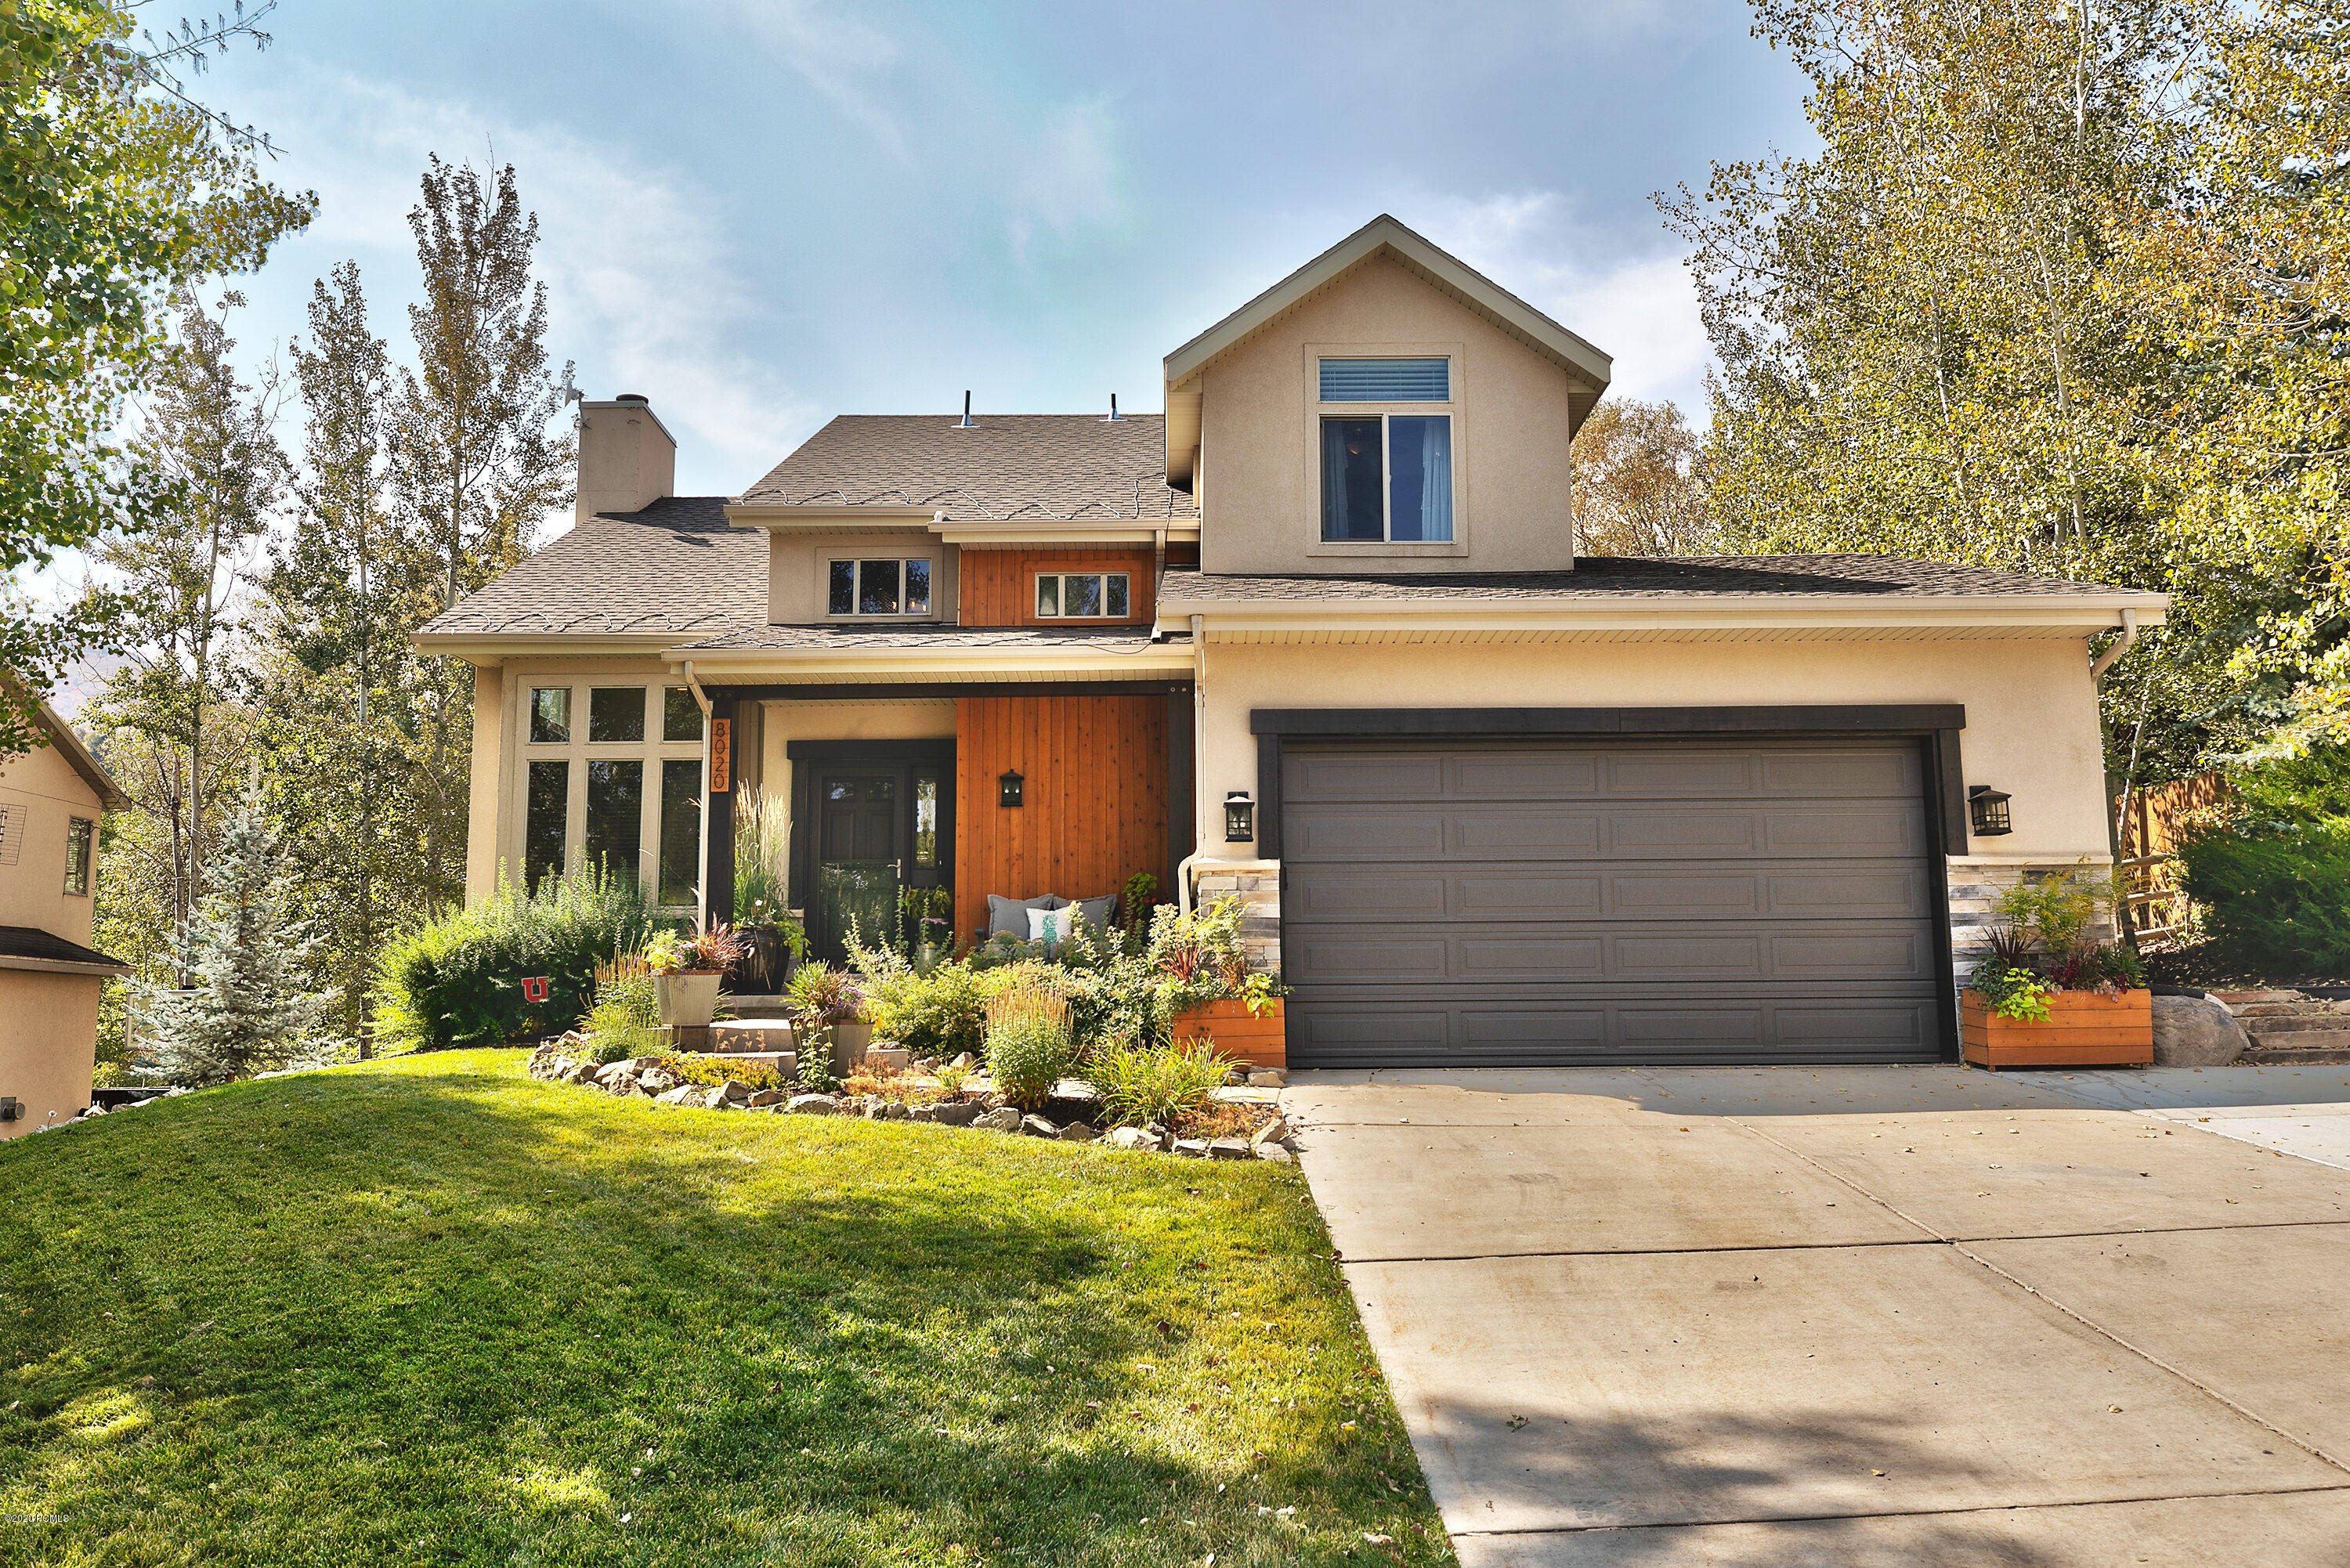 8020 Springshire Drive, Park City, Utah 84098, 4 Bedrooms Bedrooms, ,4 BathroomsBathrooms,Single Family,For Sale,Springshire,12003714